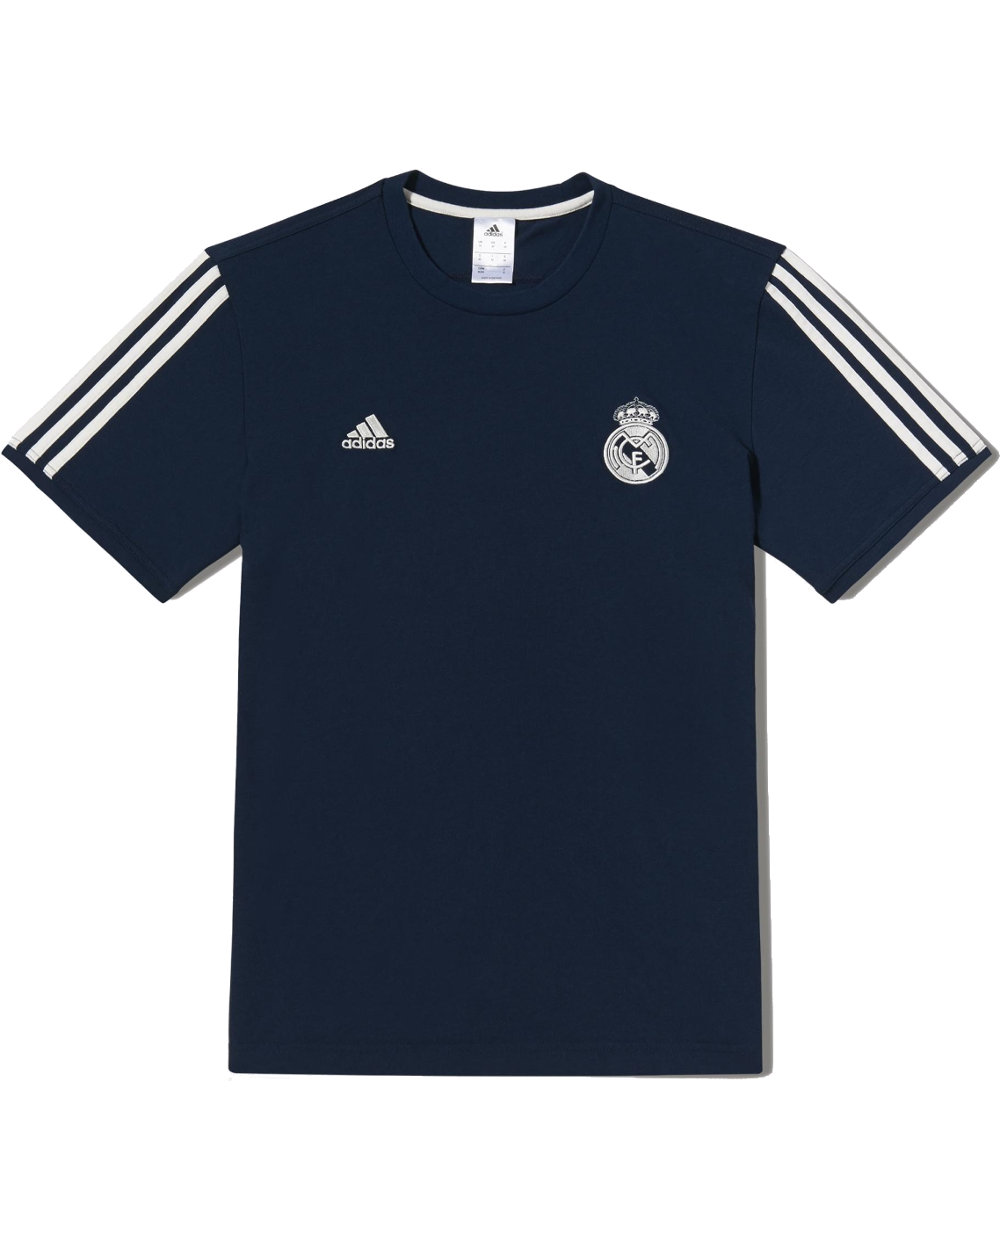 core tee real madrid adidas t shirt tempo libero 2014 15 blu cotone ebay. Black Bedroom Furniture Sets. Home Design Ideas